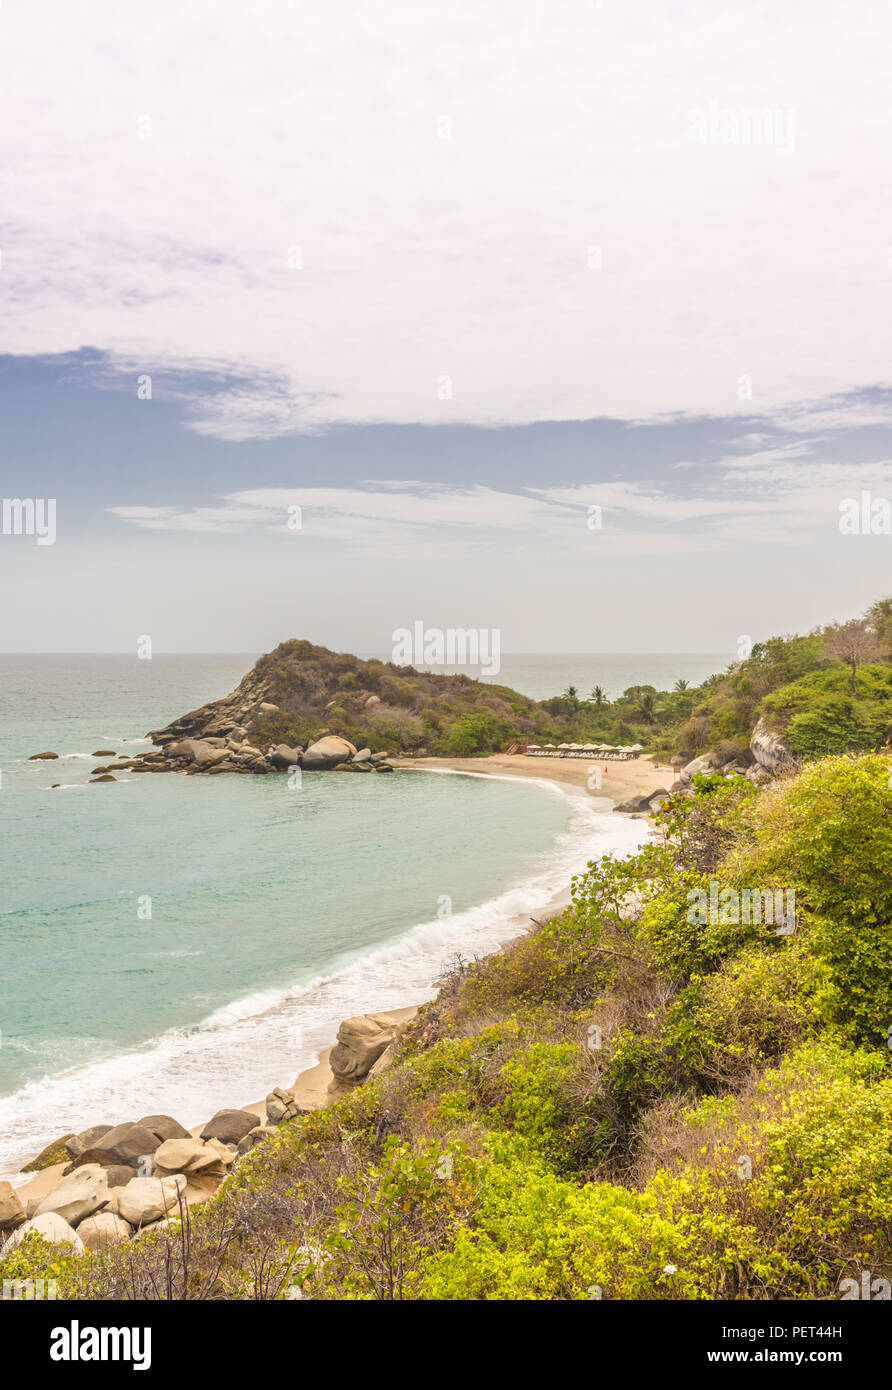 A typical view in Tayrona National Park in Colombia. Stock Photo